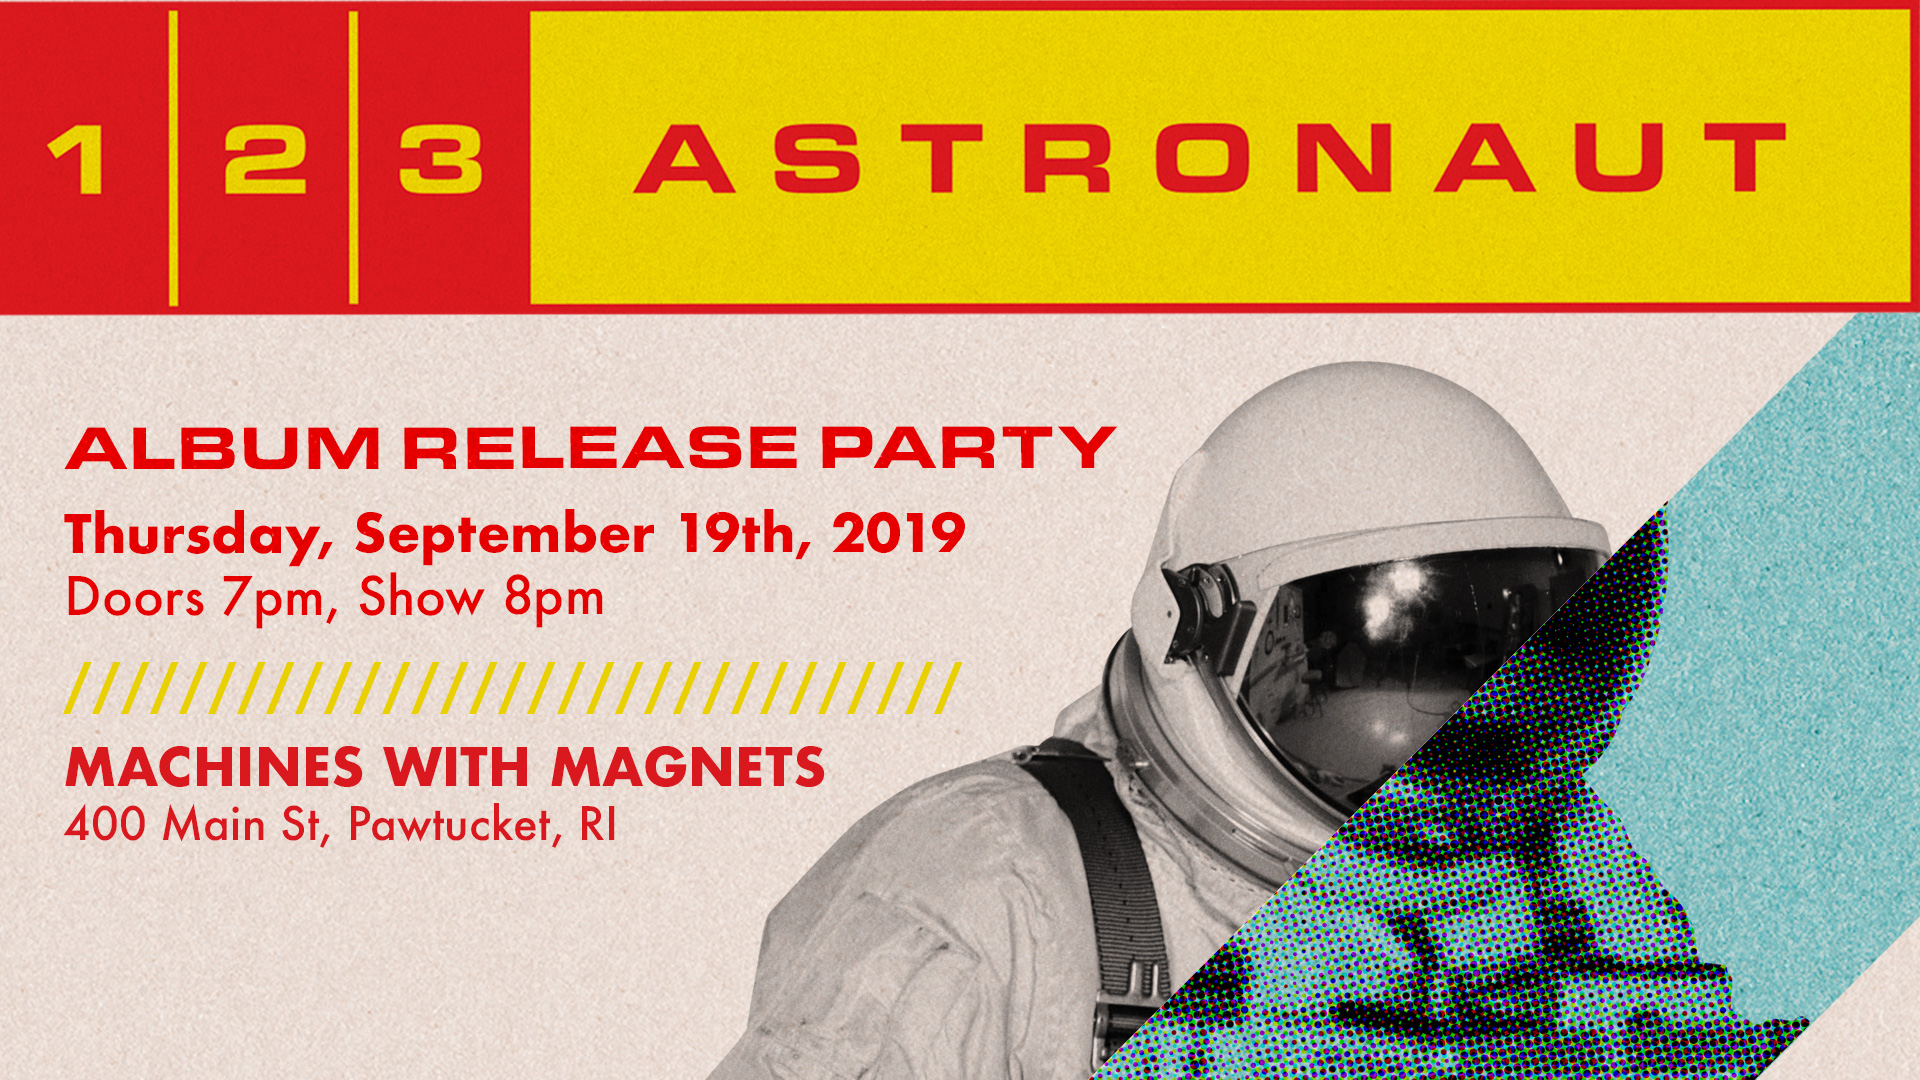 123 Astronaut Party